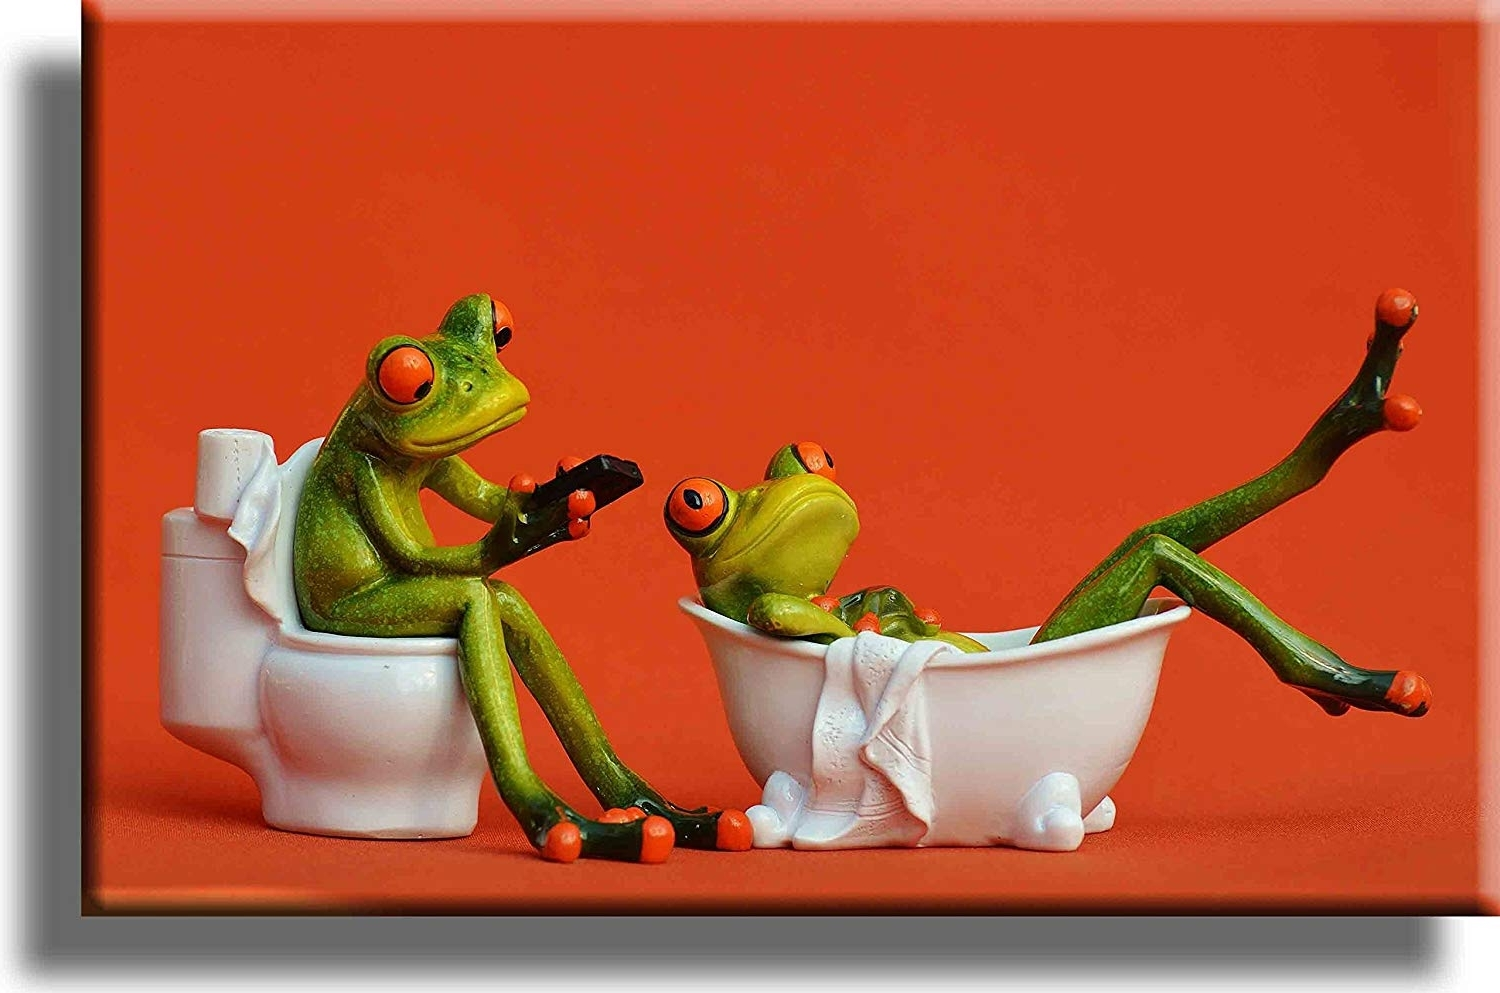 Wall Art Painting On Canvas Frog In Bathroom Wall Decor Funny Frog Painting For Livingroom Bedroom Decoration Framed Painting Ready To Hang 40+ Frog Bathroom Decorating Inspirations